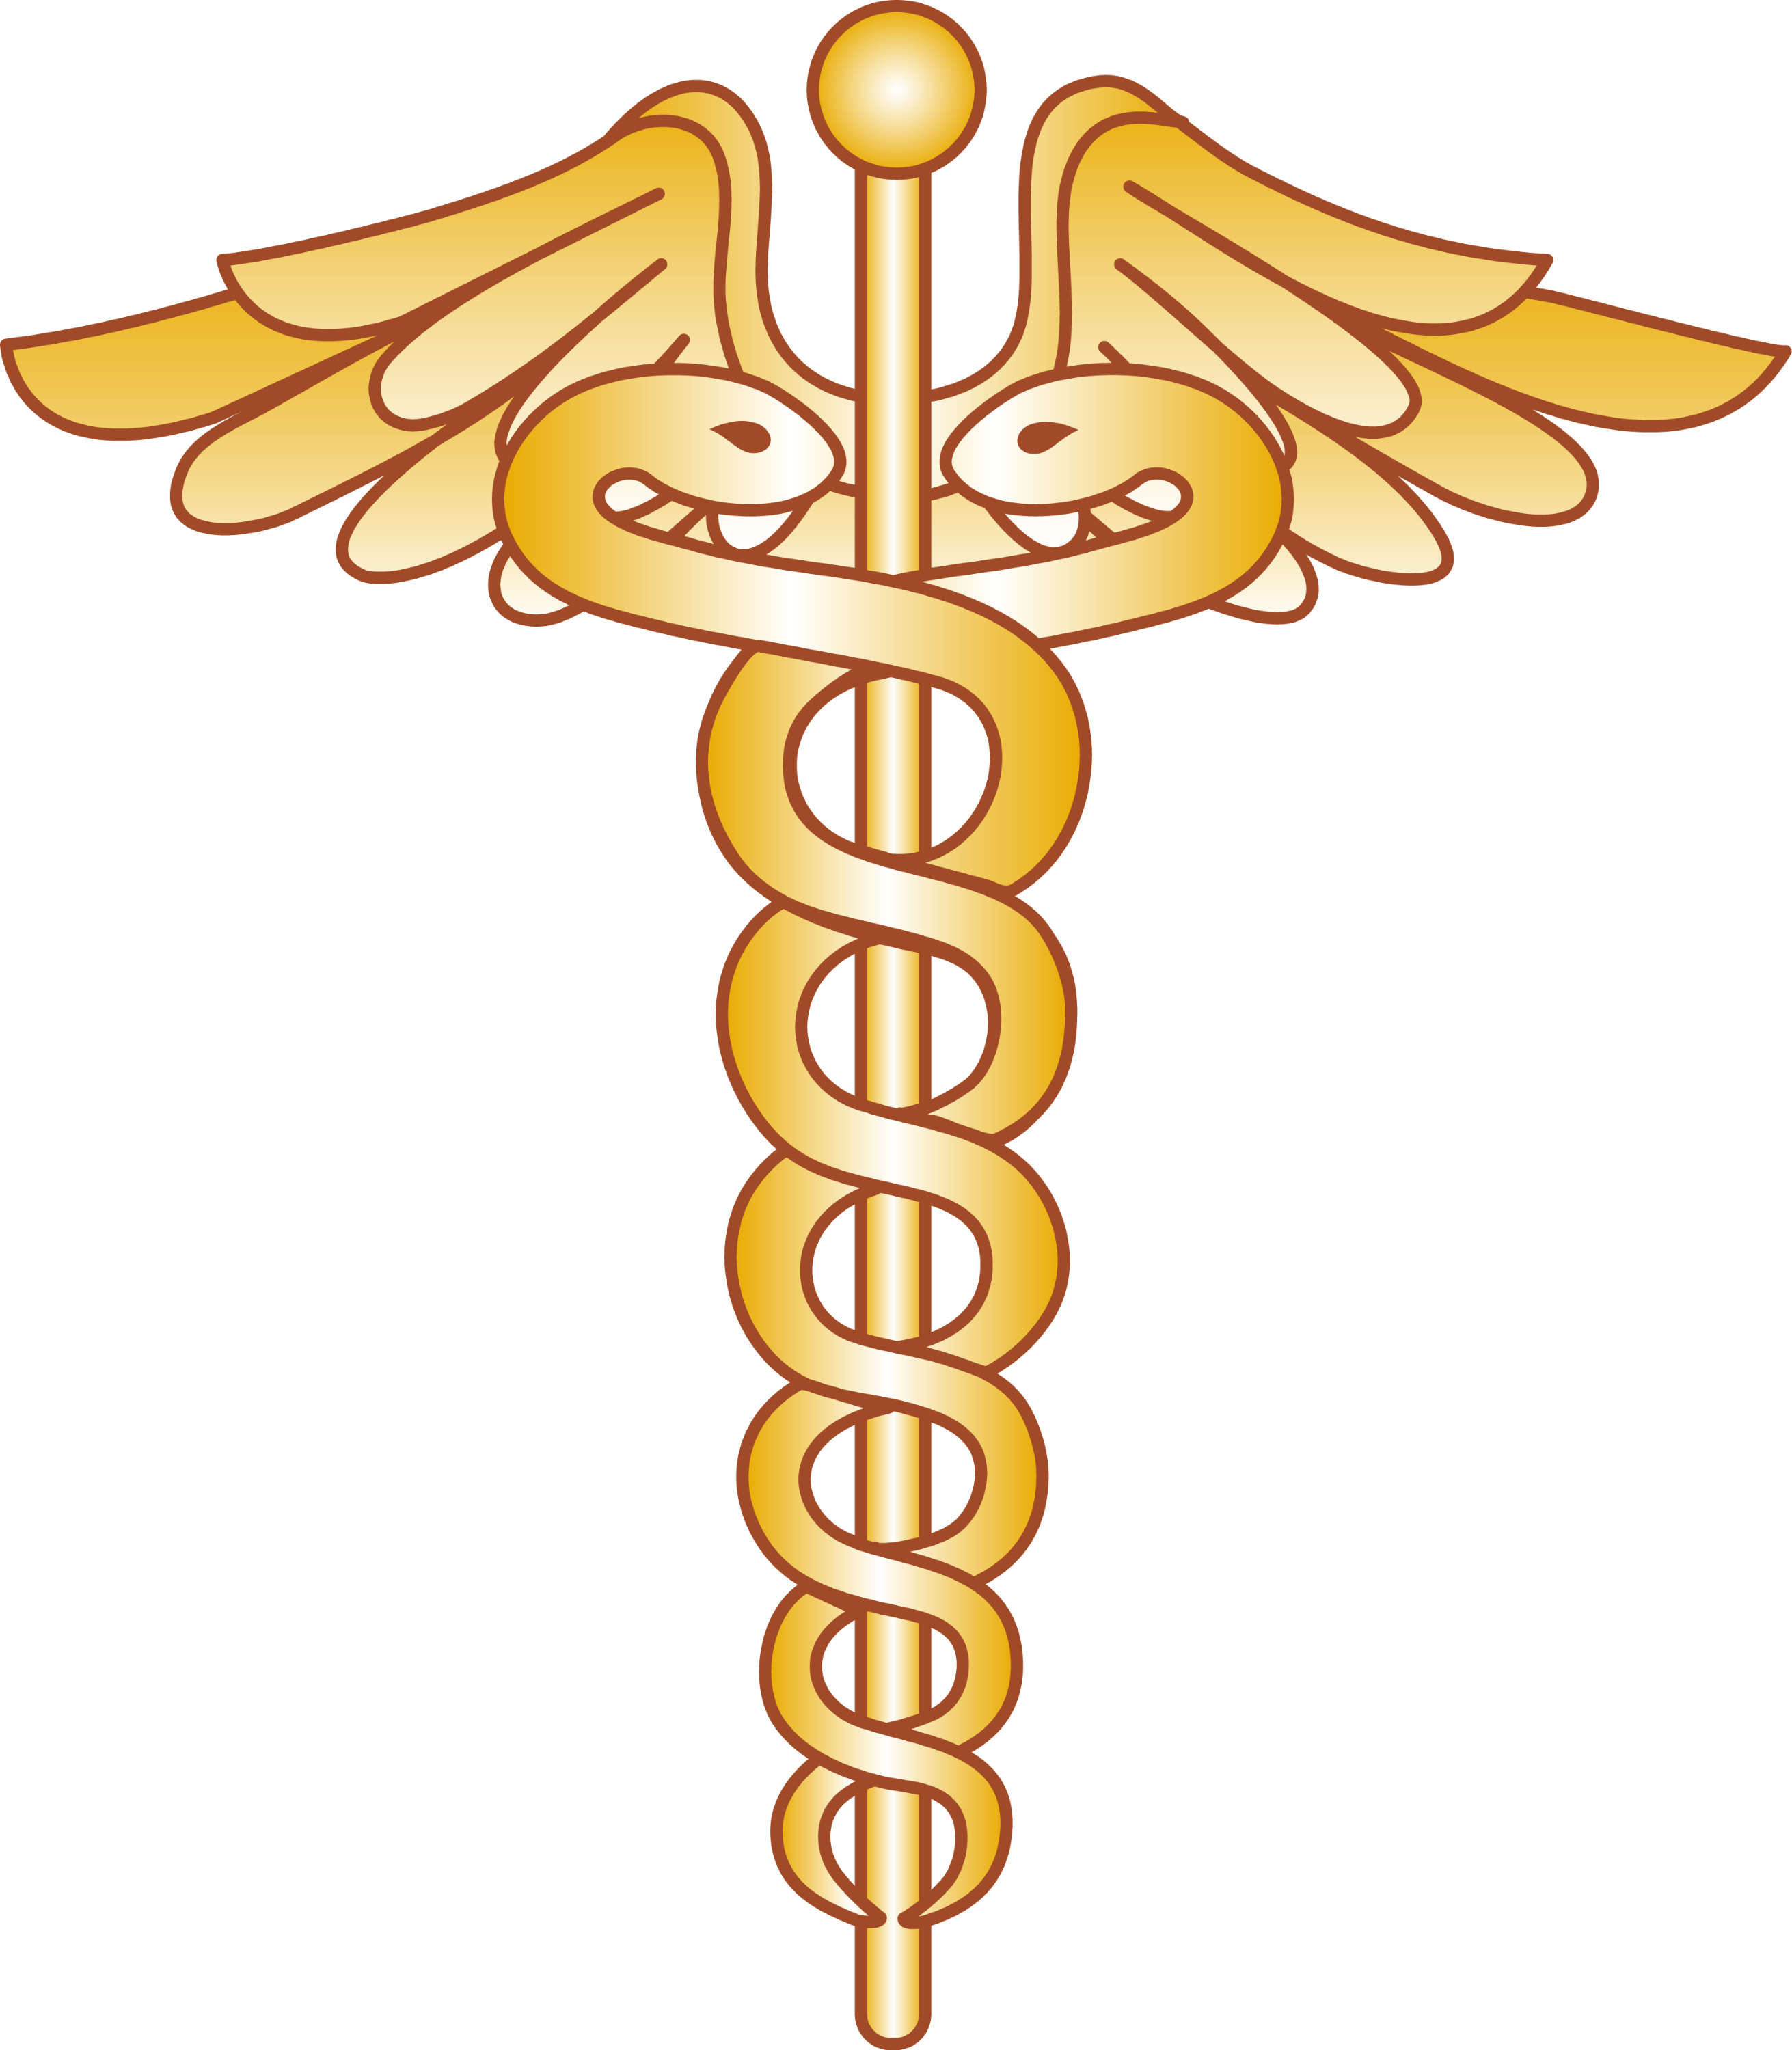 Golden Caduceus Logo Design - Free Clip Art